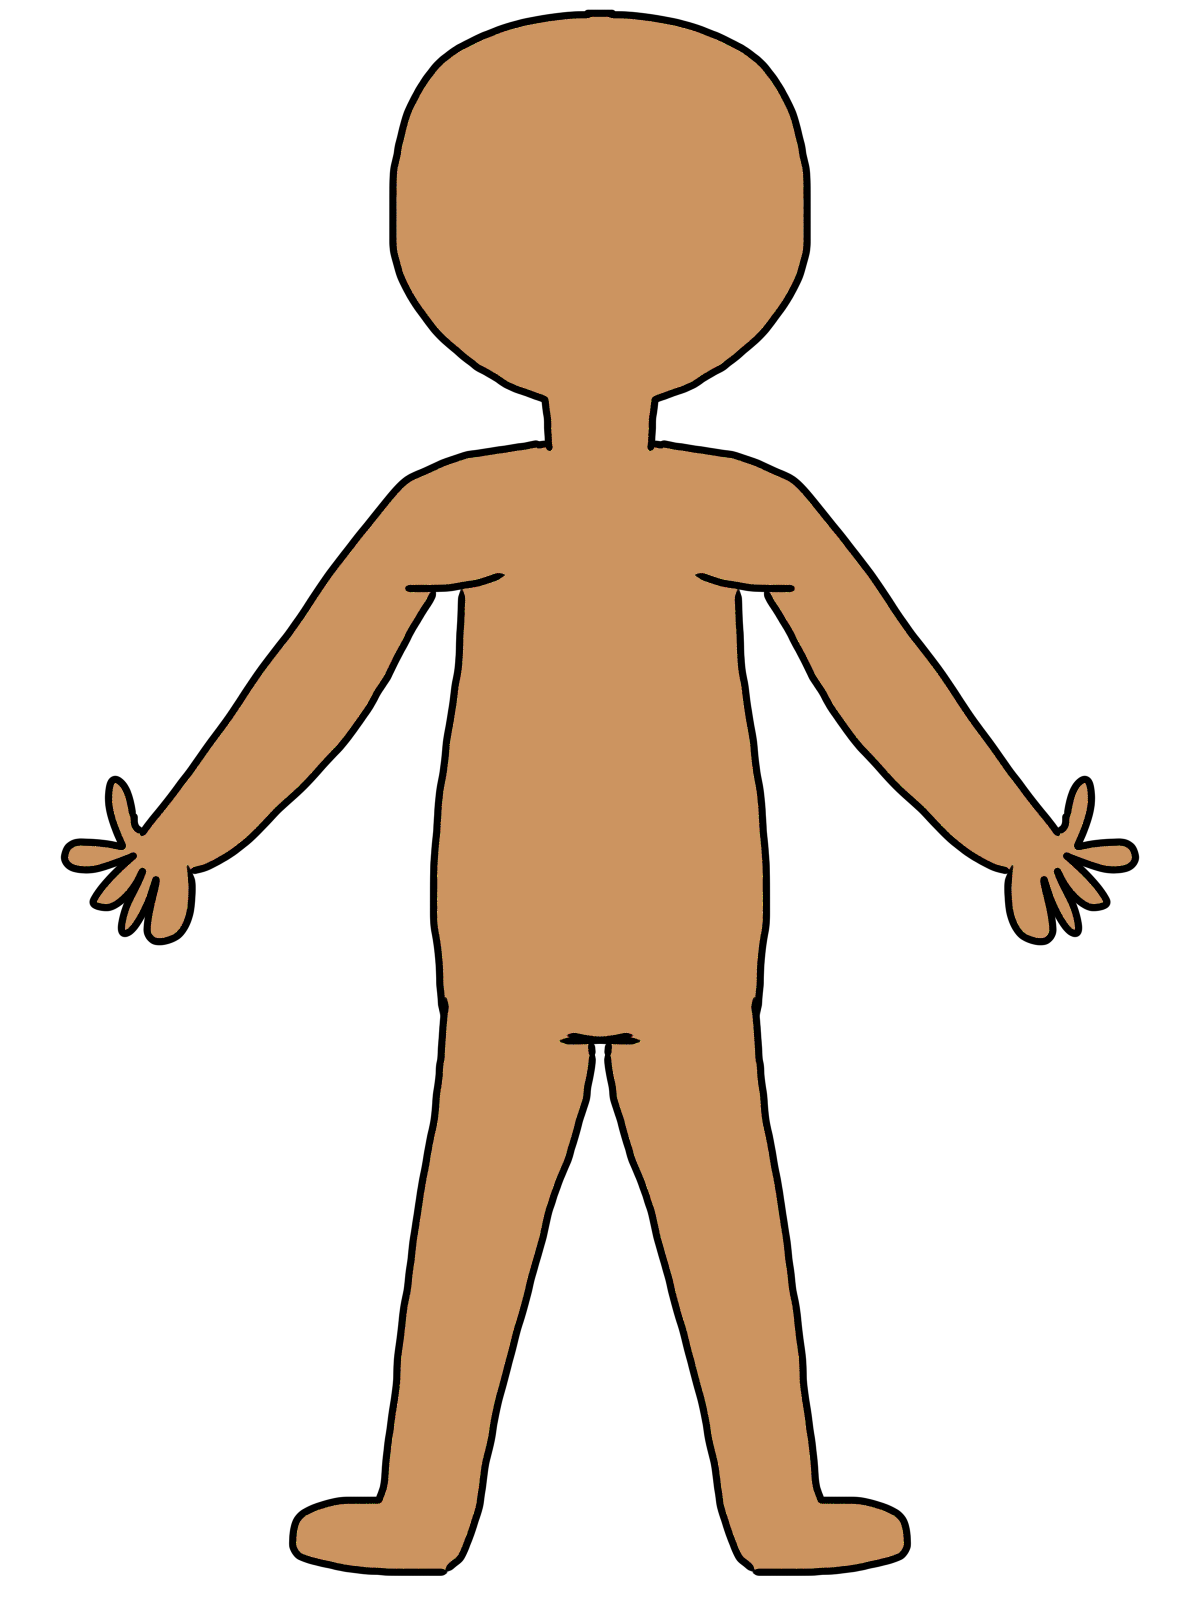 Body clipart boy's, Body boy's Transparent FREE for download on  WebStockReview 2020